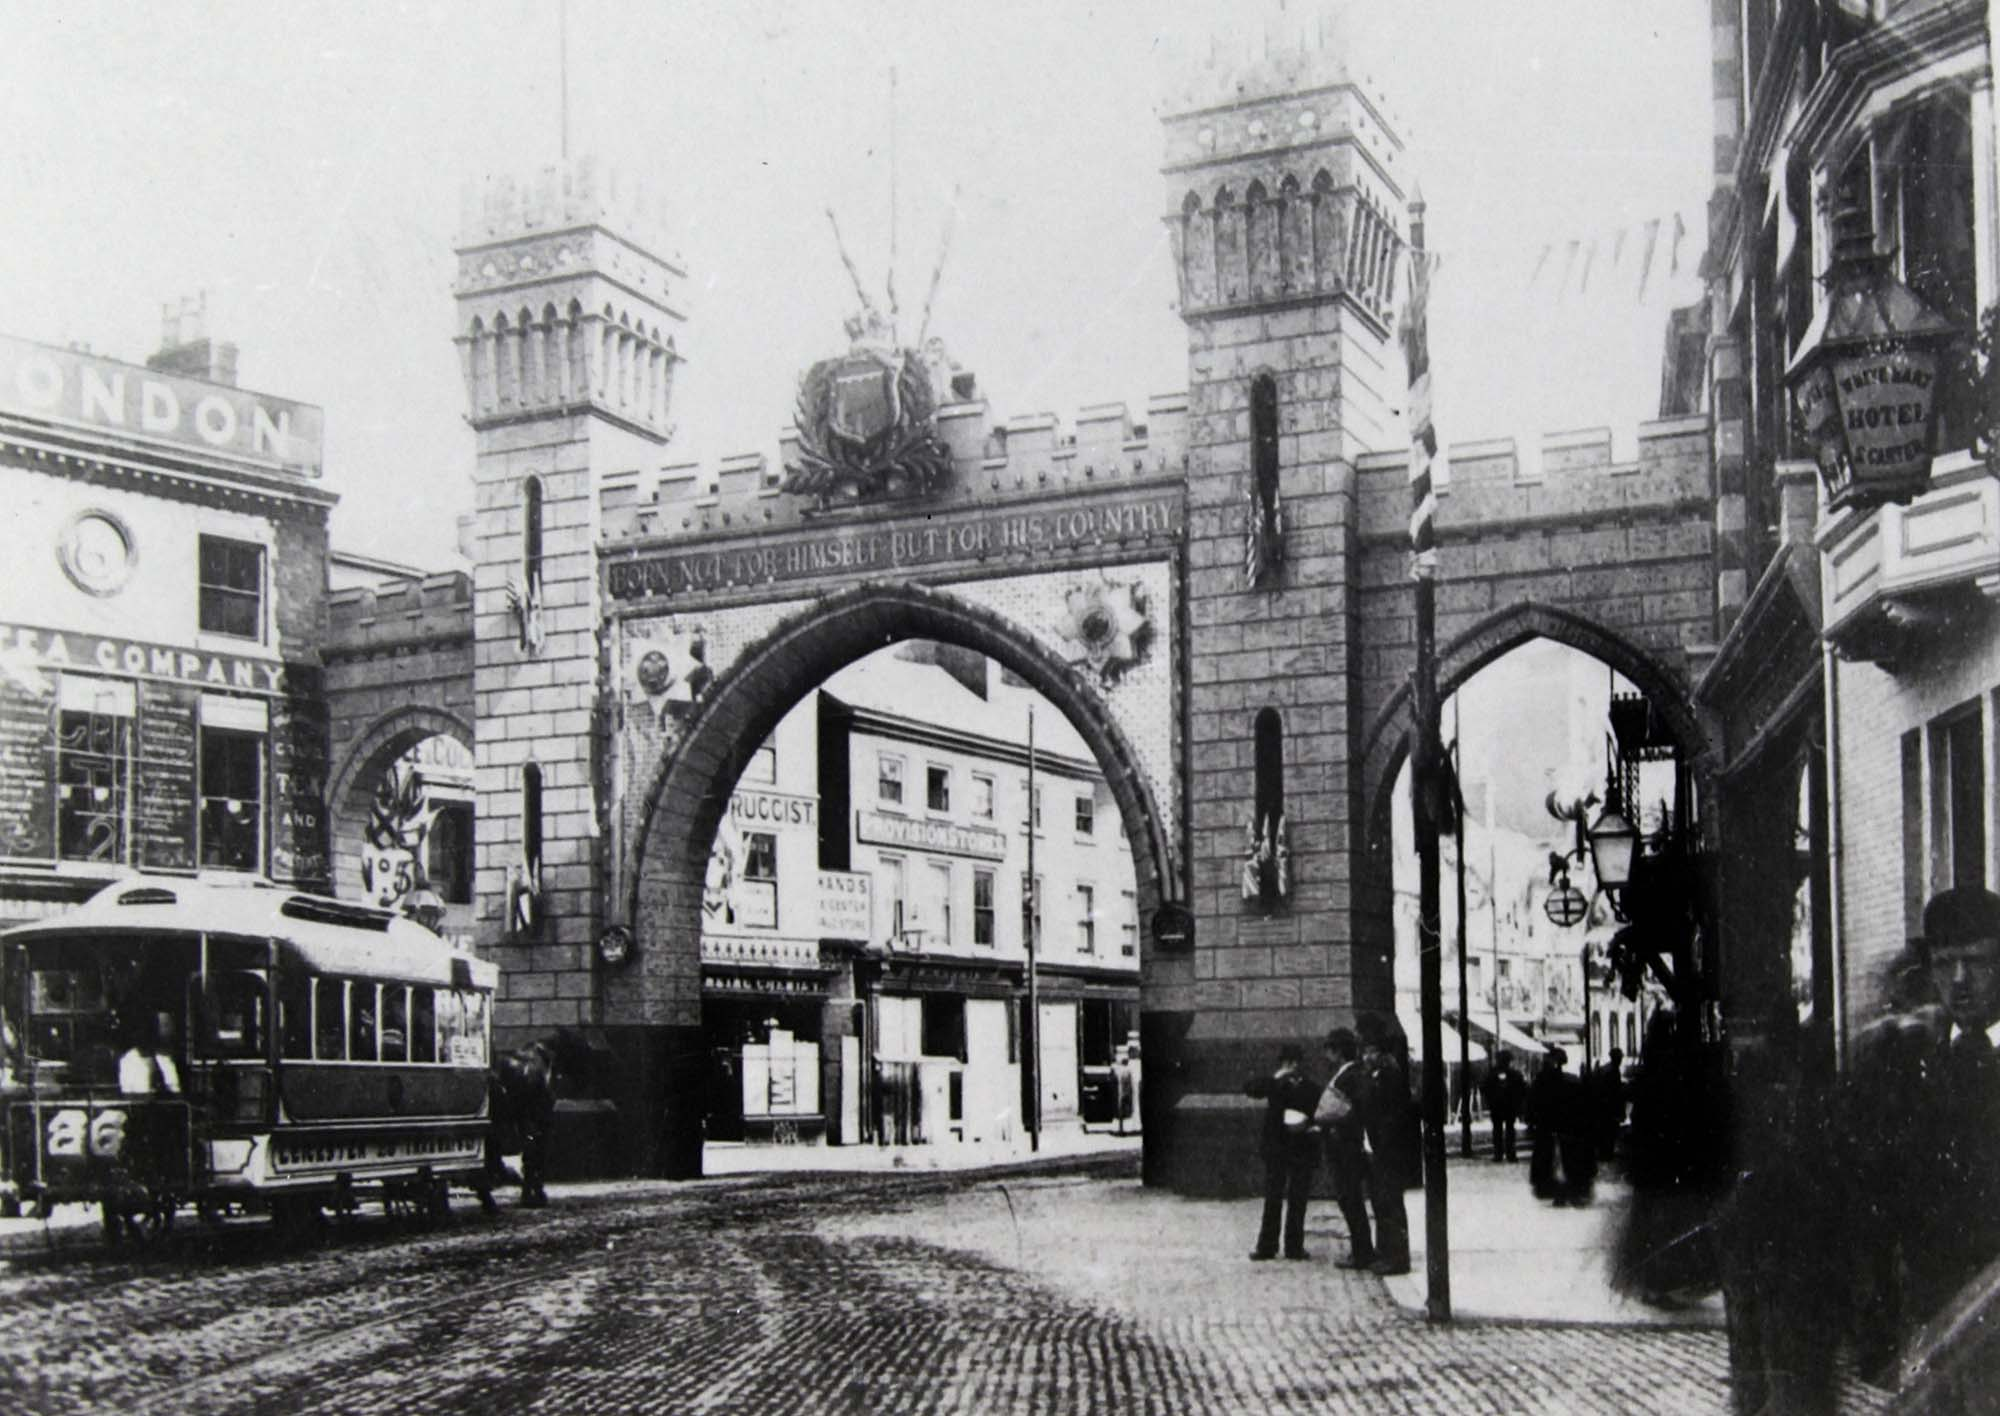 A temporary arch built for the royal visit of the Price of Wales in 1882. This one was at the top of Belgrave Gate near the Clock Tower but there were more around the city - Leicestershire Record Office